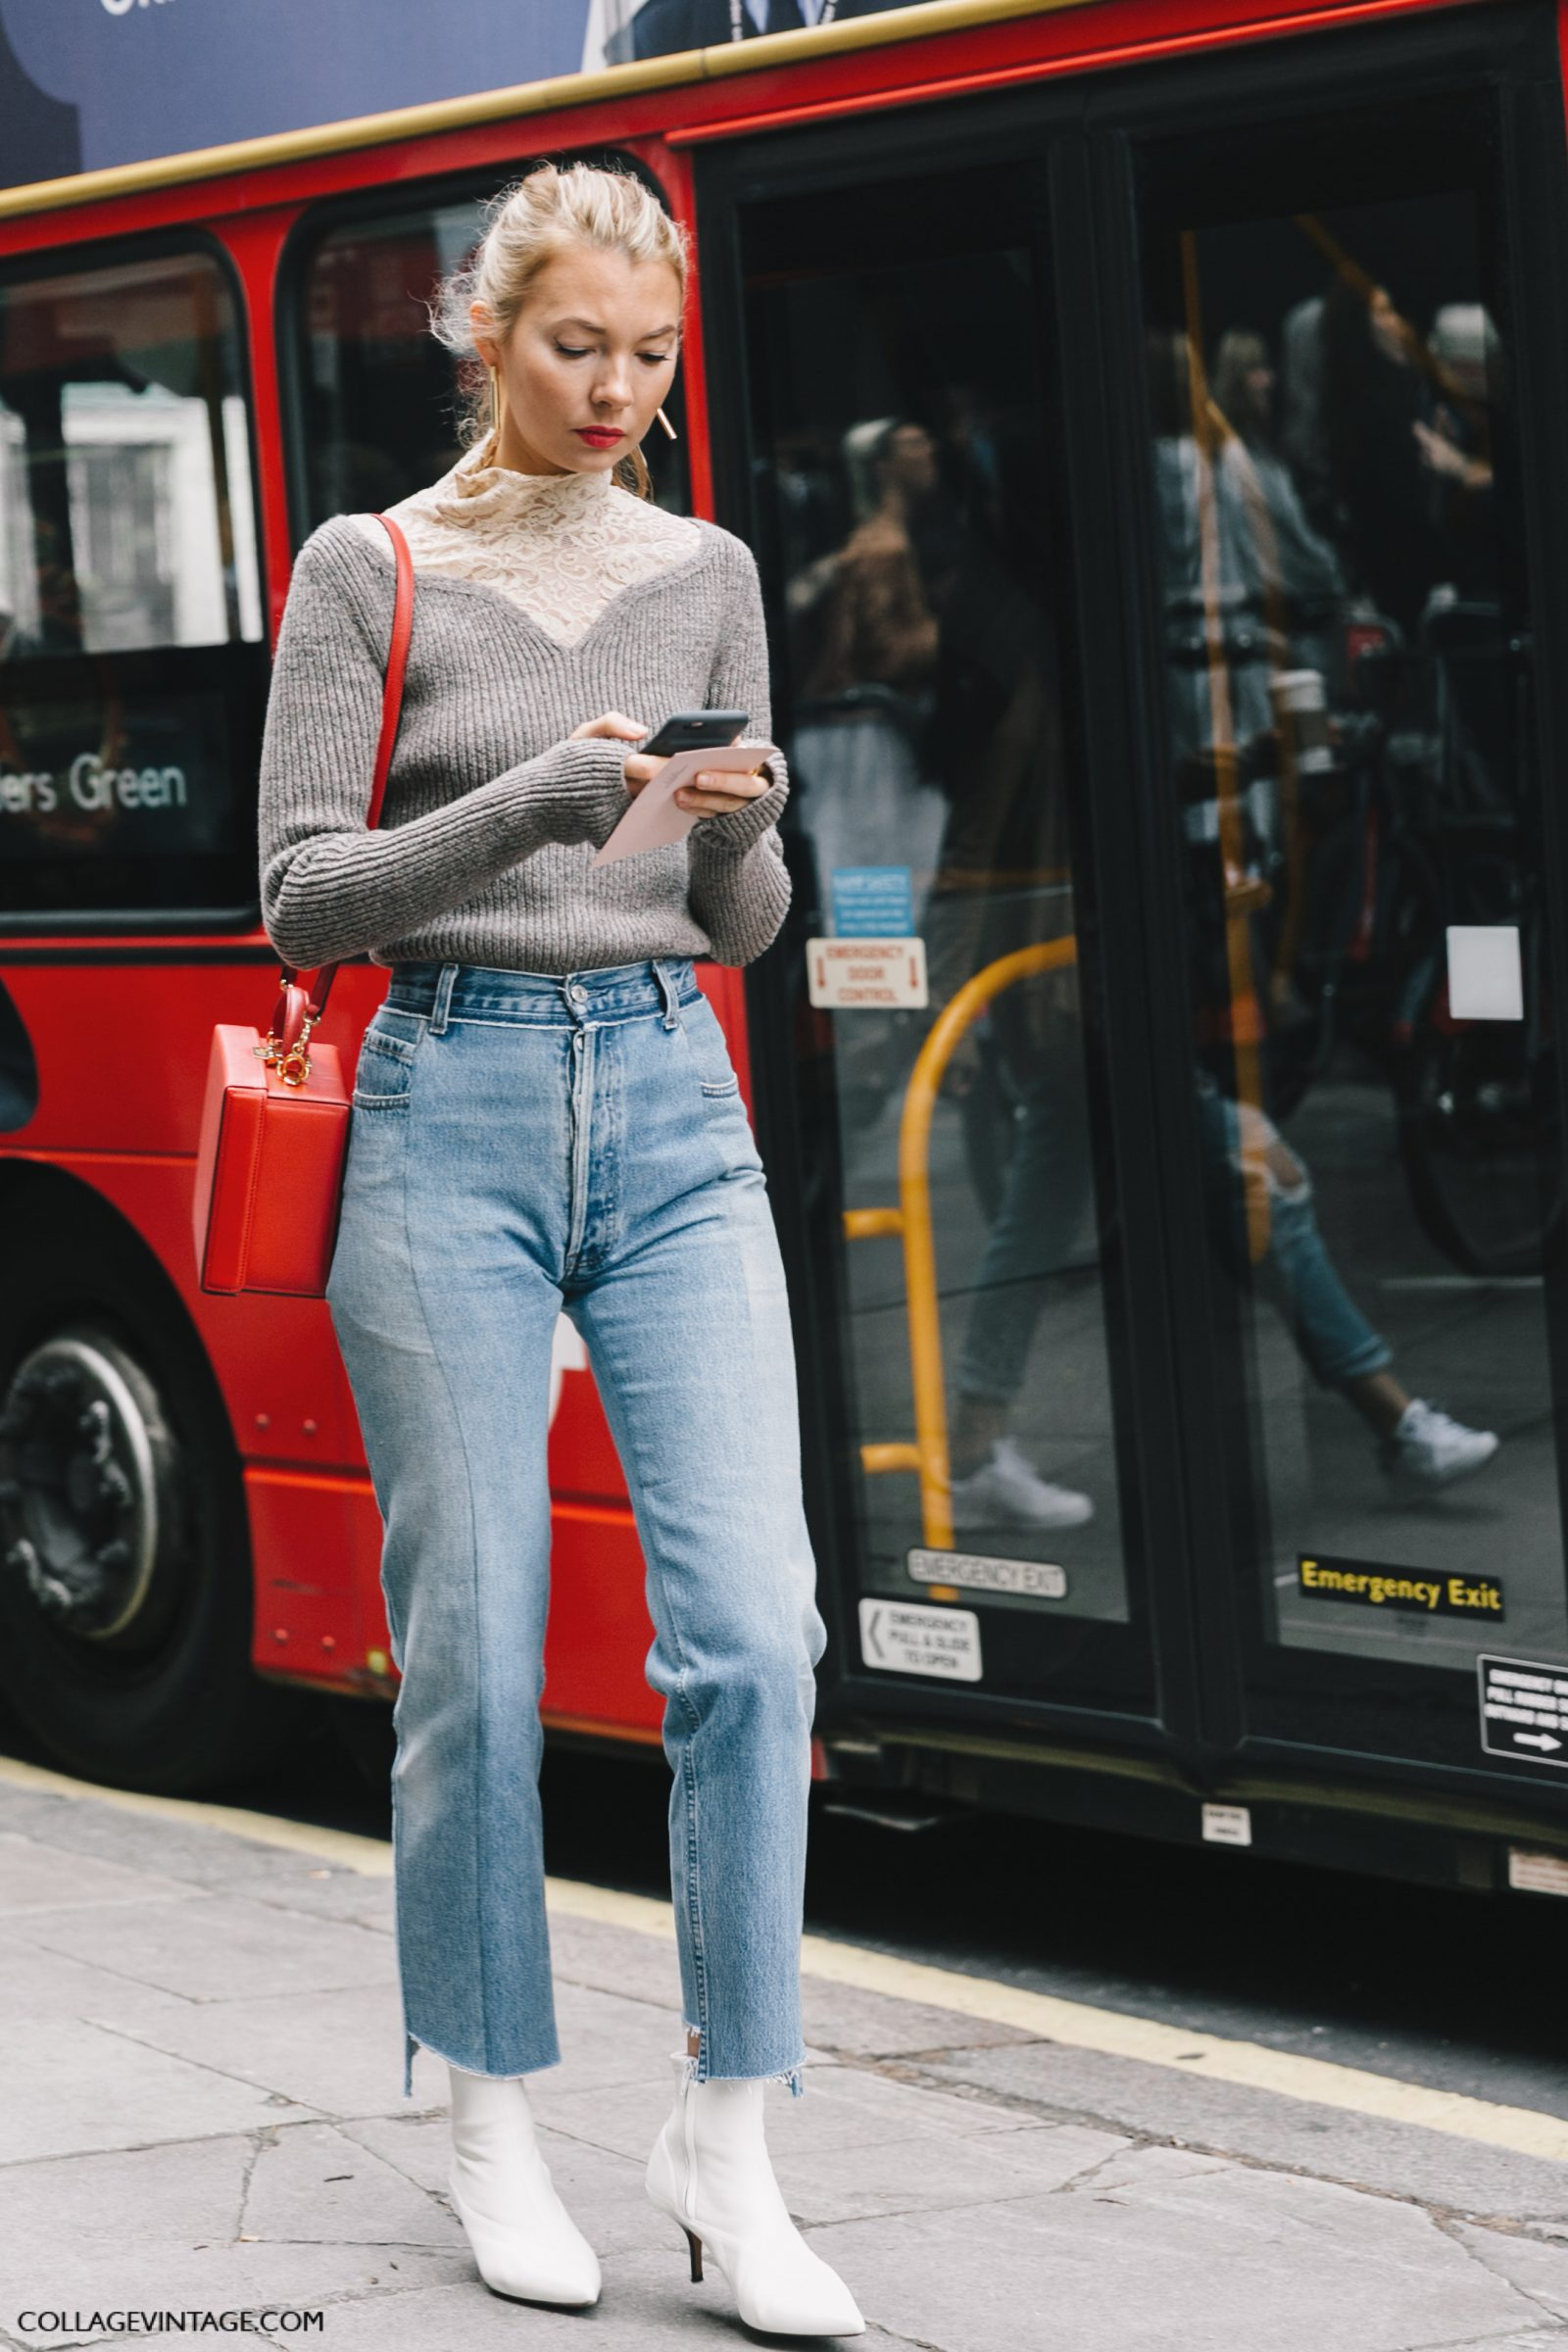 lfw-london_fashion_week_ss17-street_style-outfits-collage_vintage-vintage-roksanda-christopher_kane-joseph